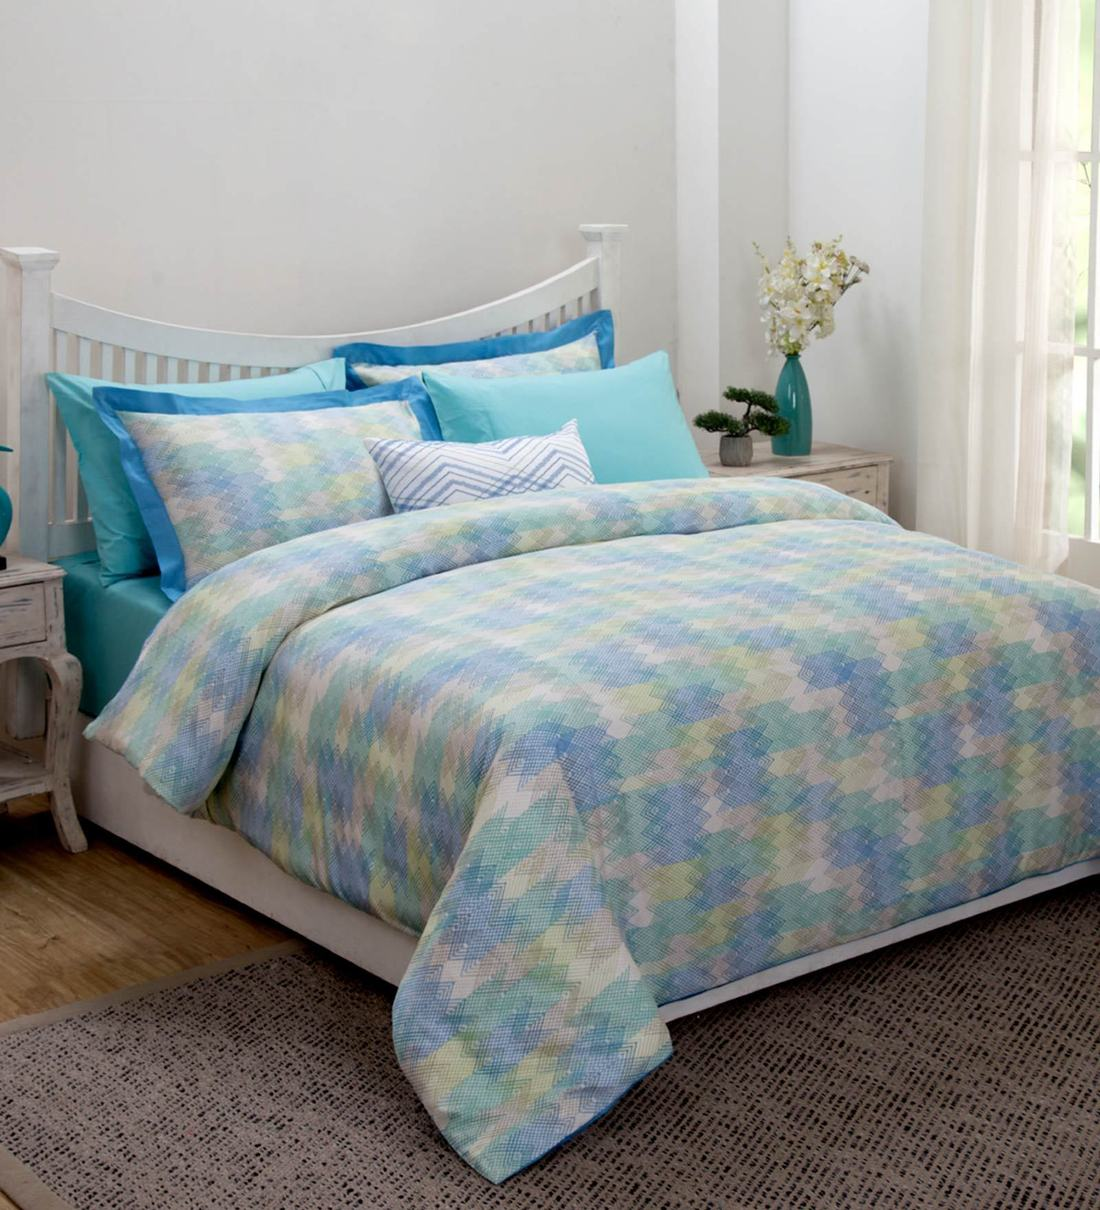 Buy Modern Aesthetic Cotton 7 Pieces Double Bedding Set By Maspar Online Bedding Sets Bedding Sets Furnishings Pepperfry Product